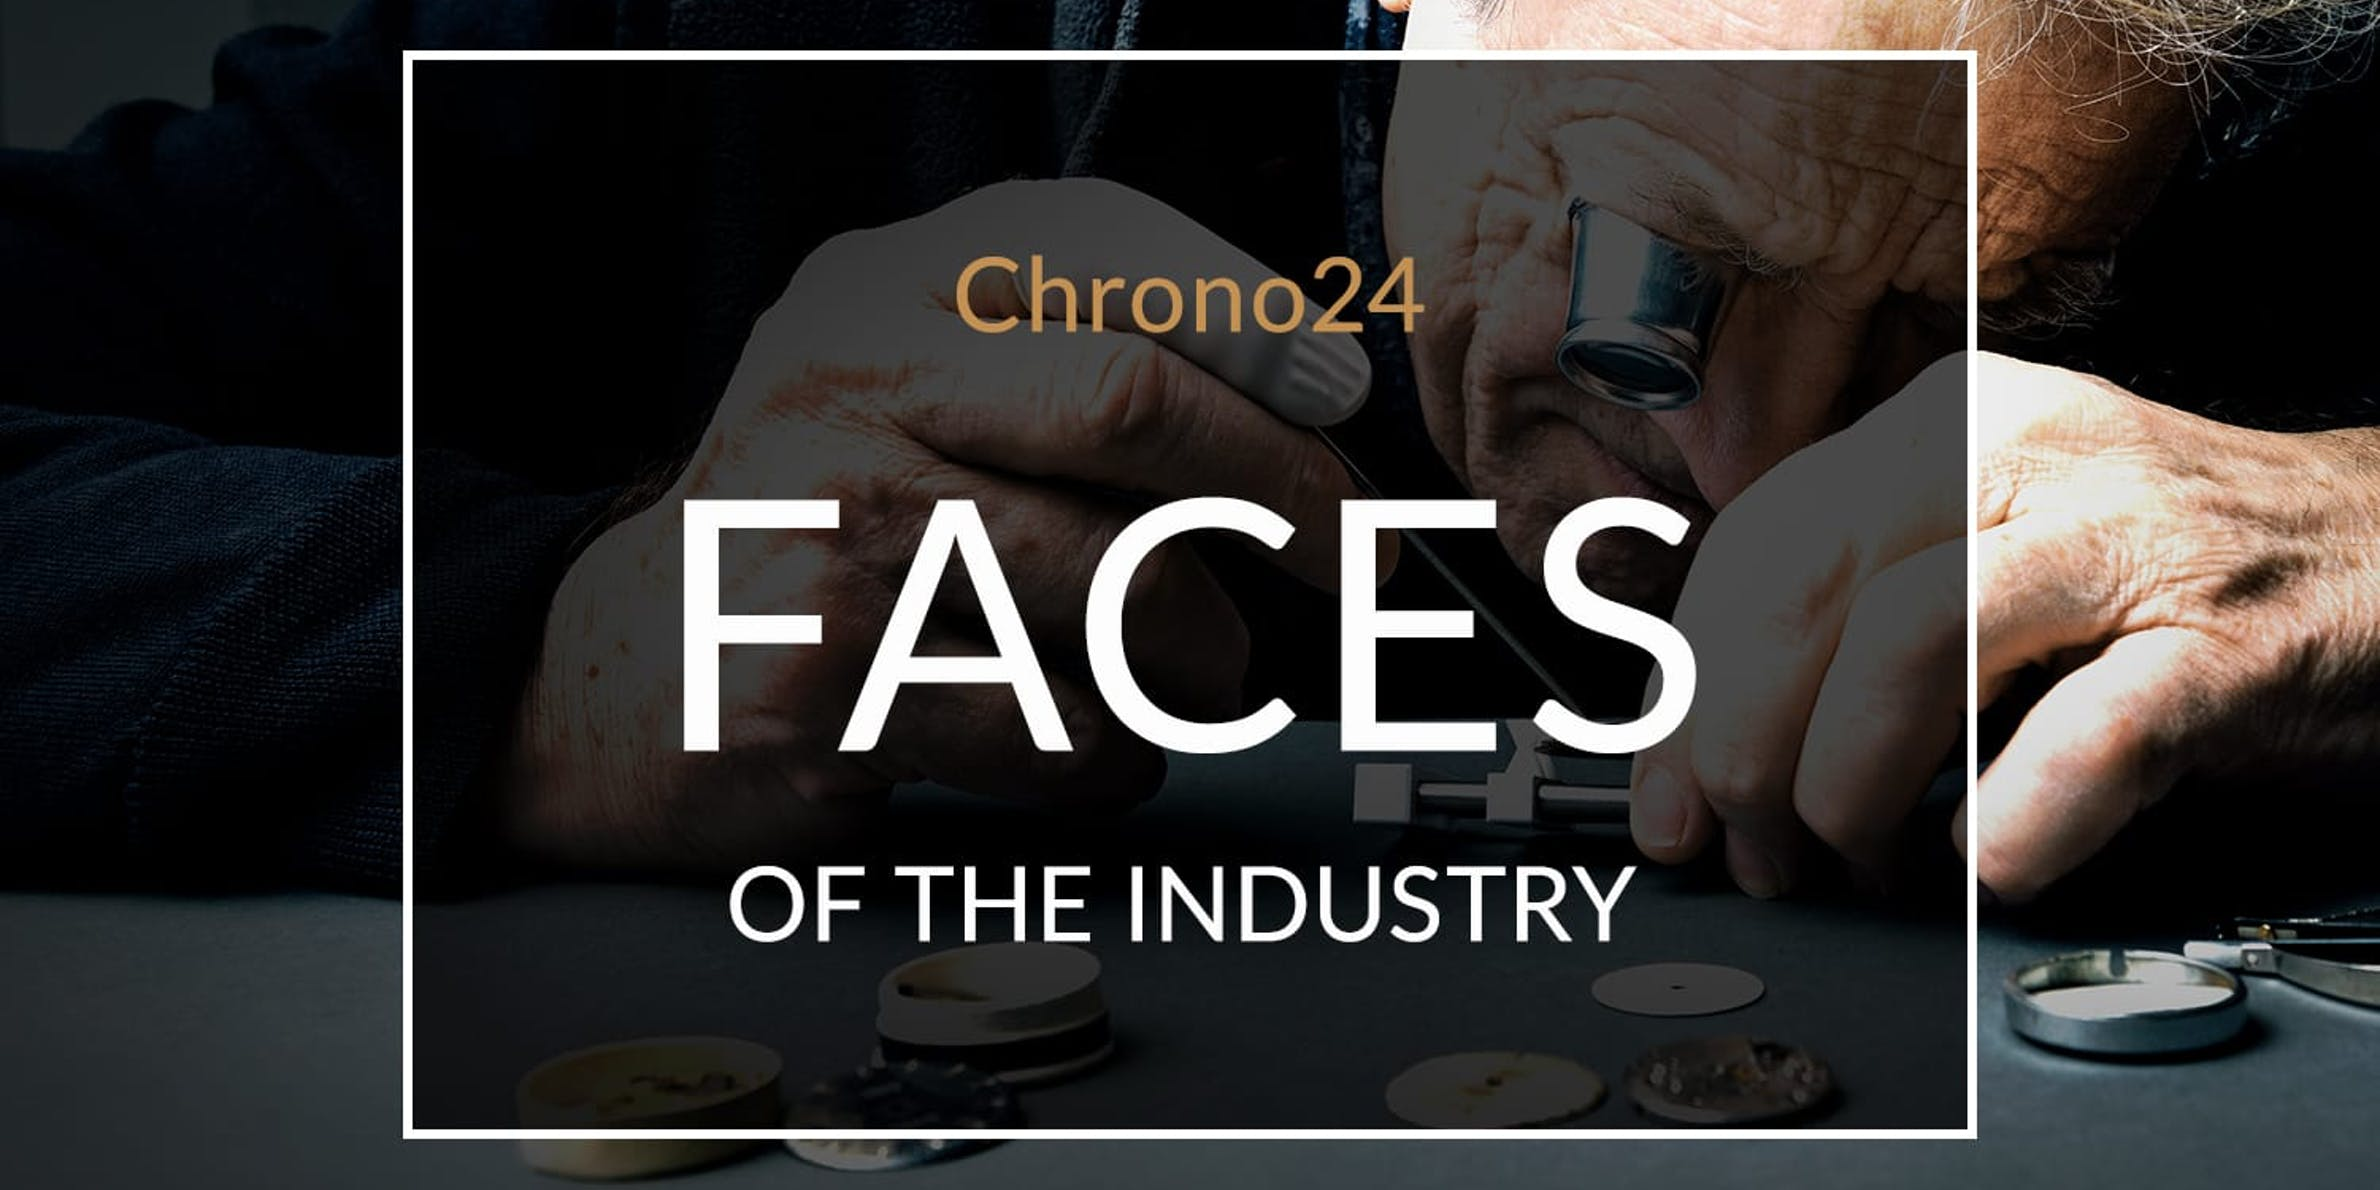 Faces of the Watch Industry